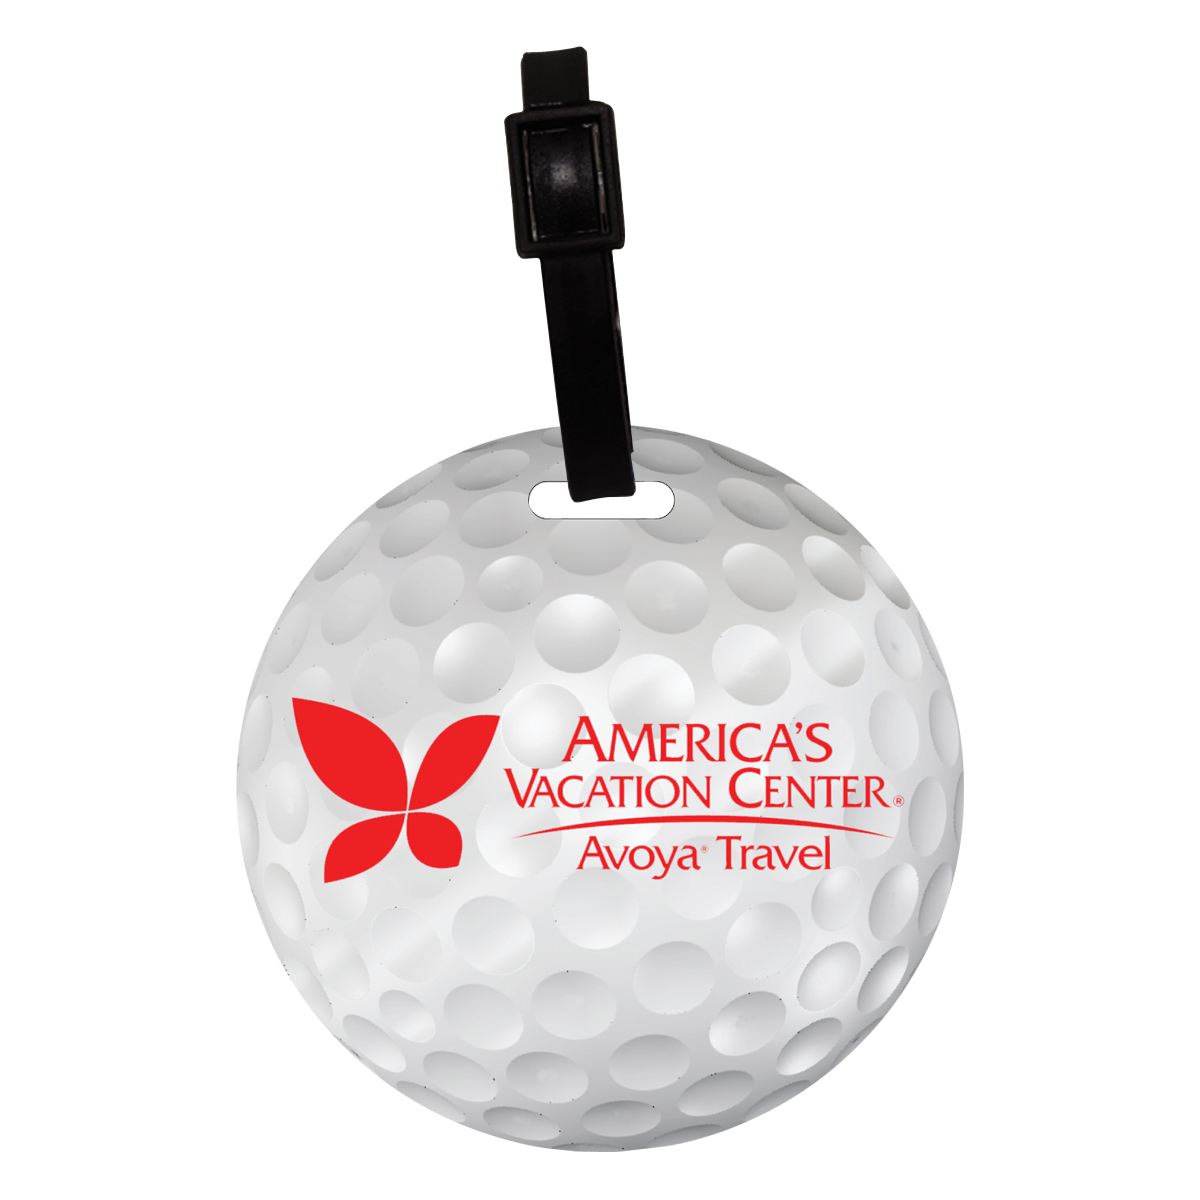 Recycled Mini Golf Ball Luggage Tag Innovation Line